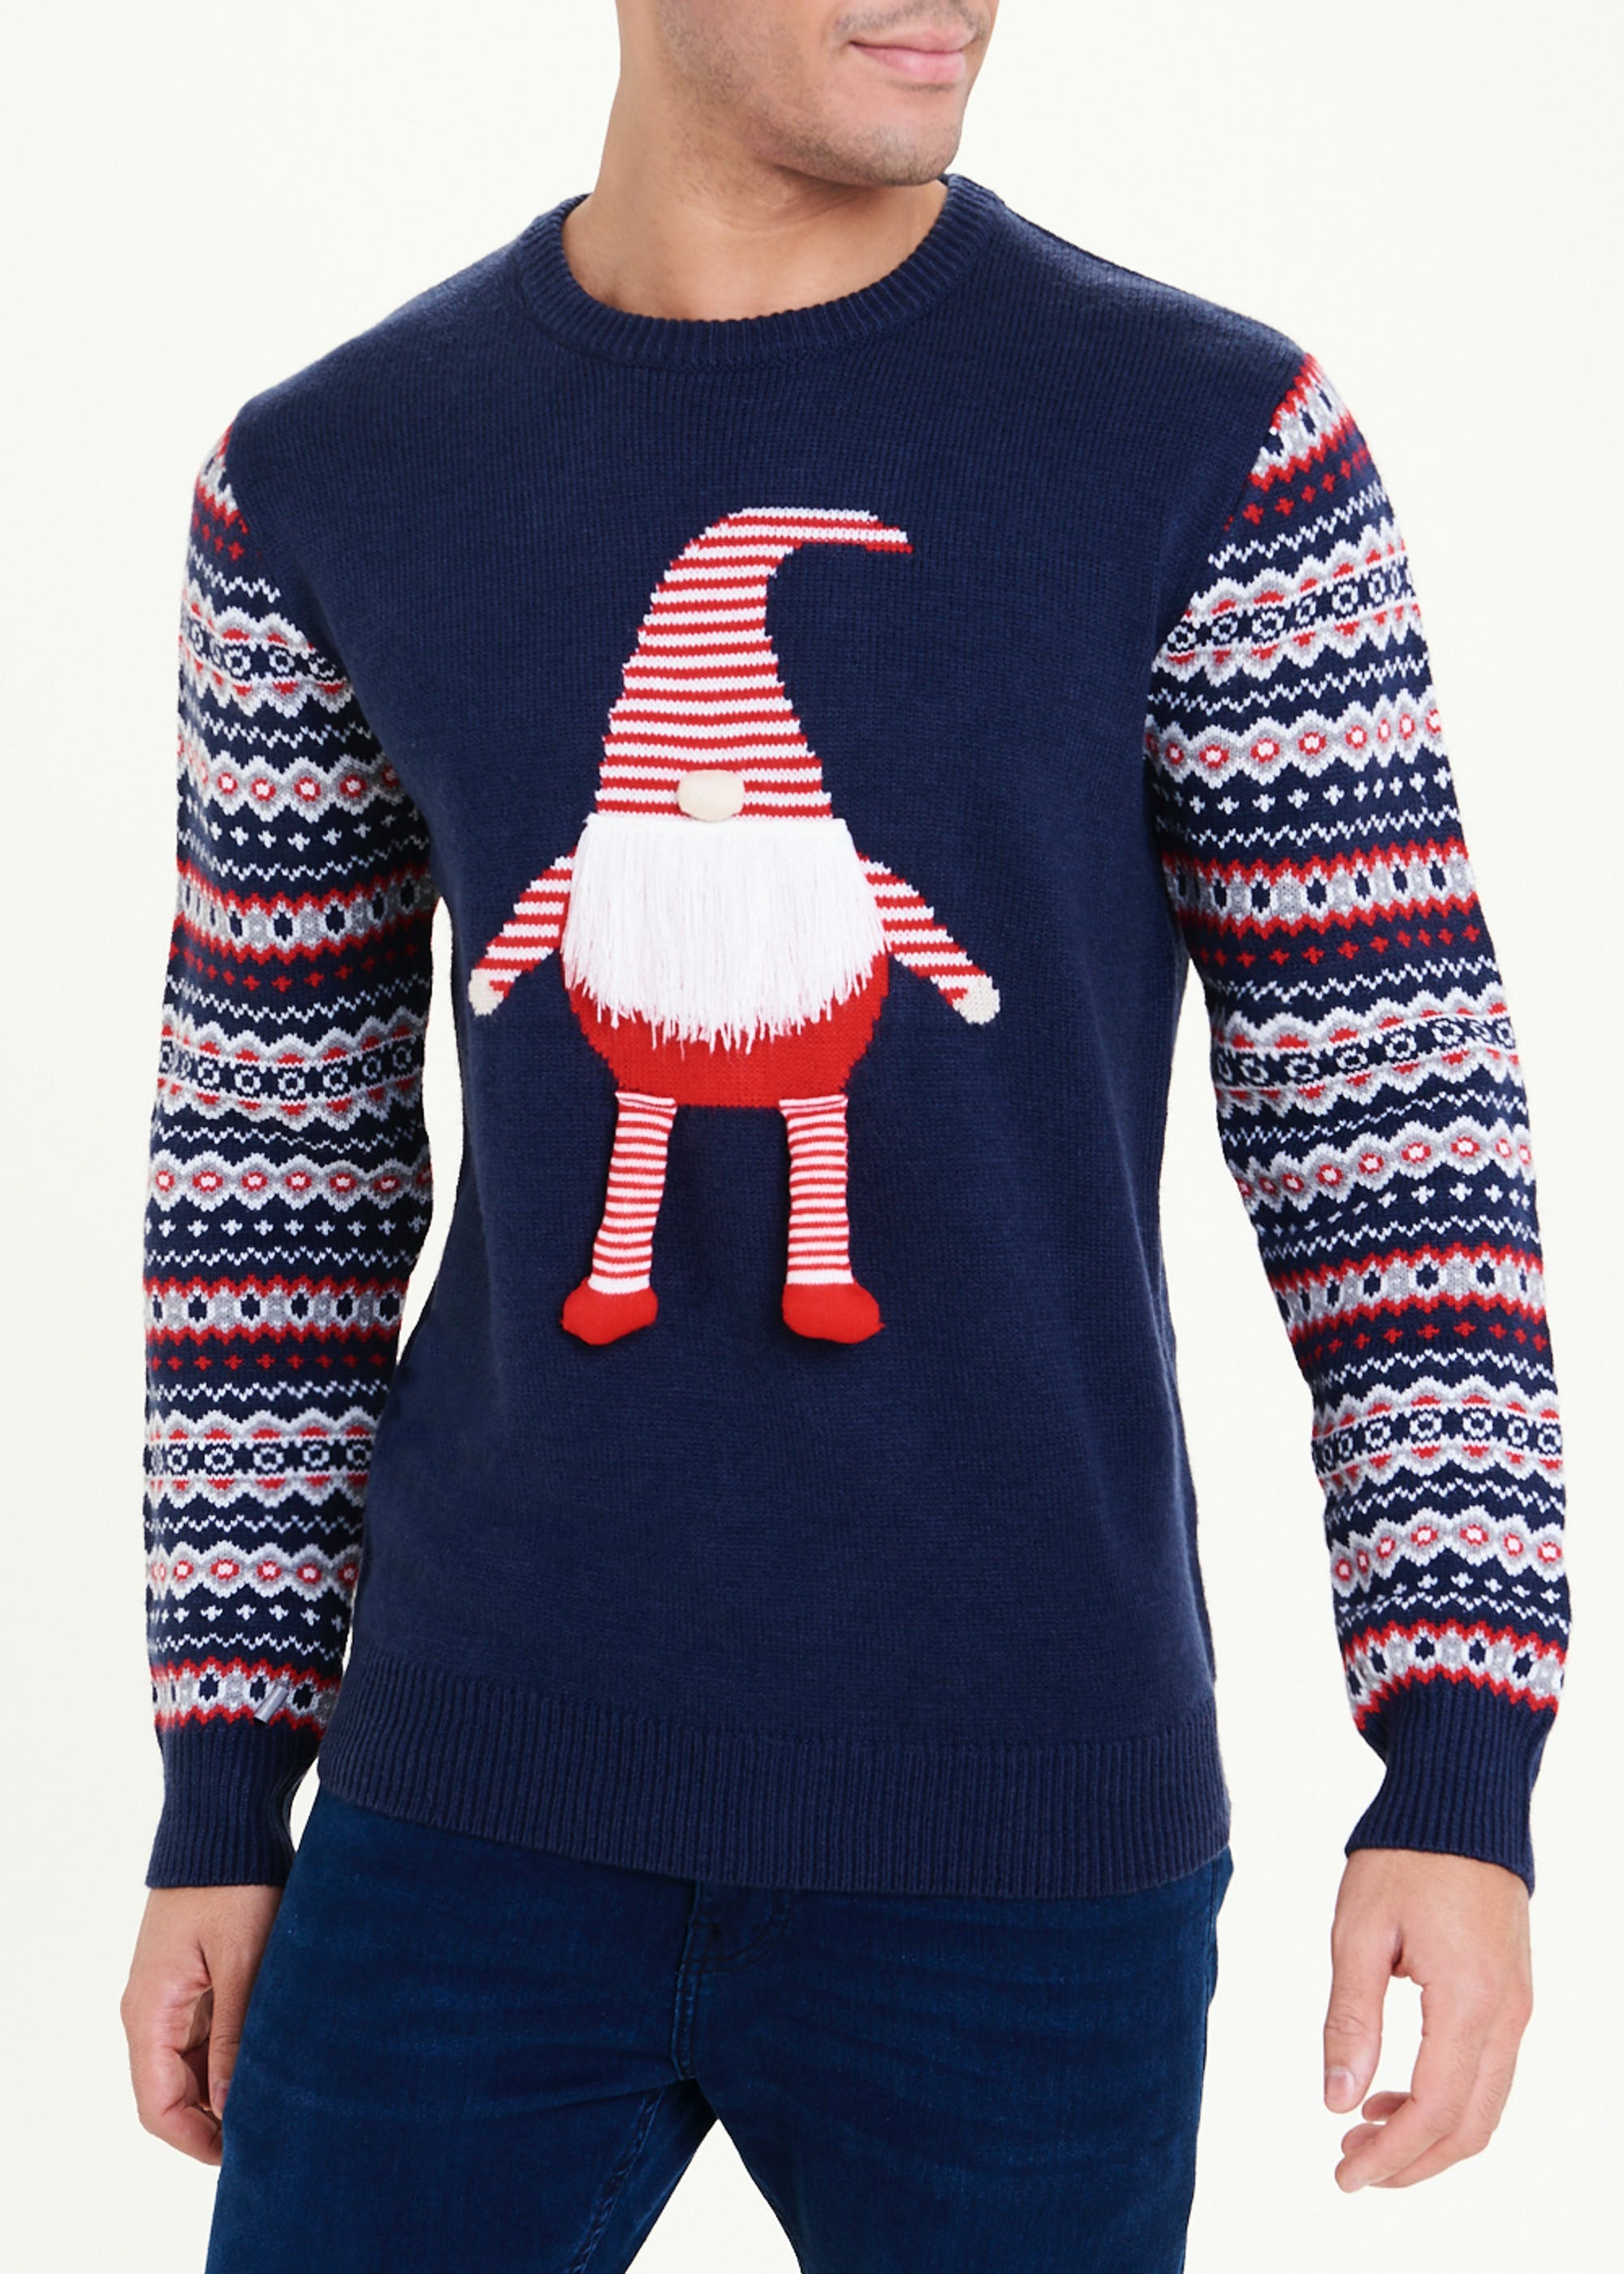 Grab this year's Christmas jumper for £12 from Matalan